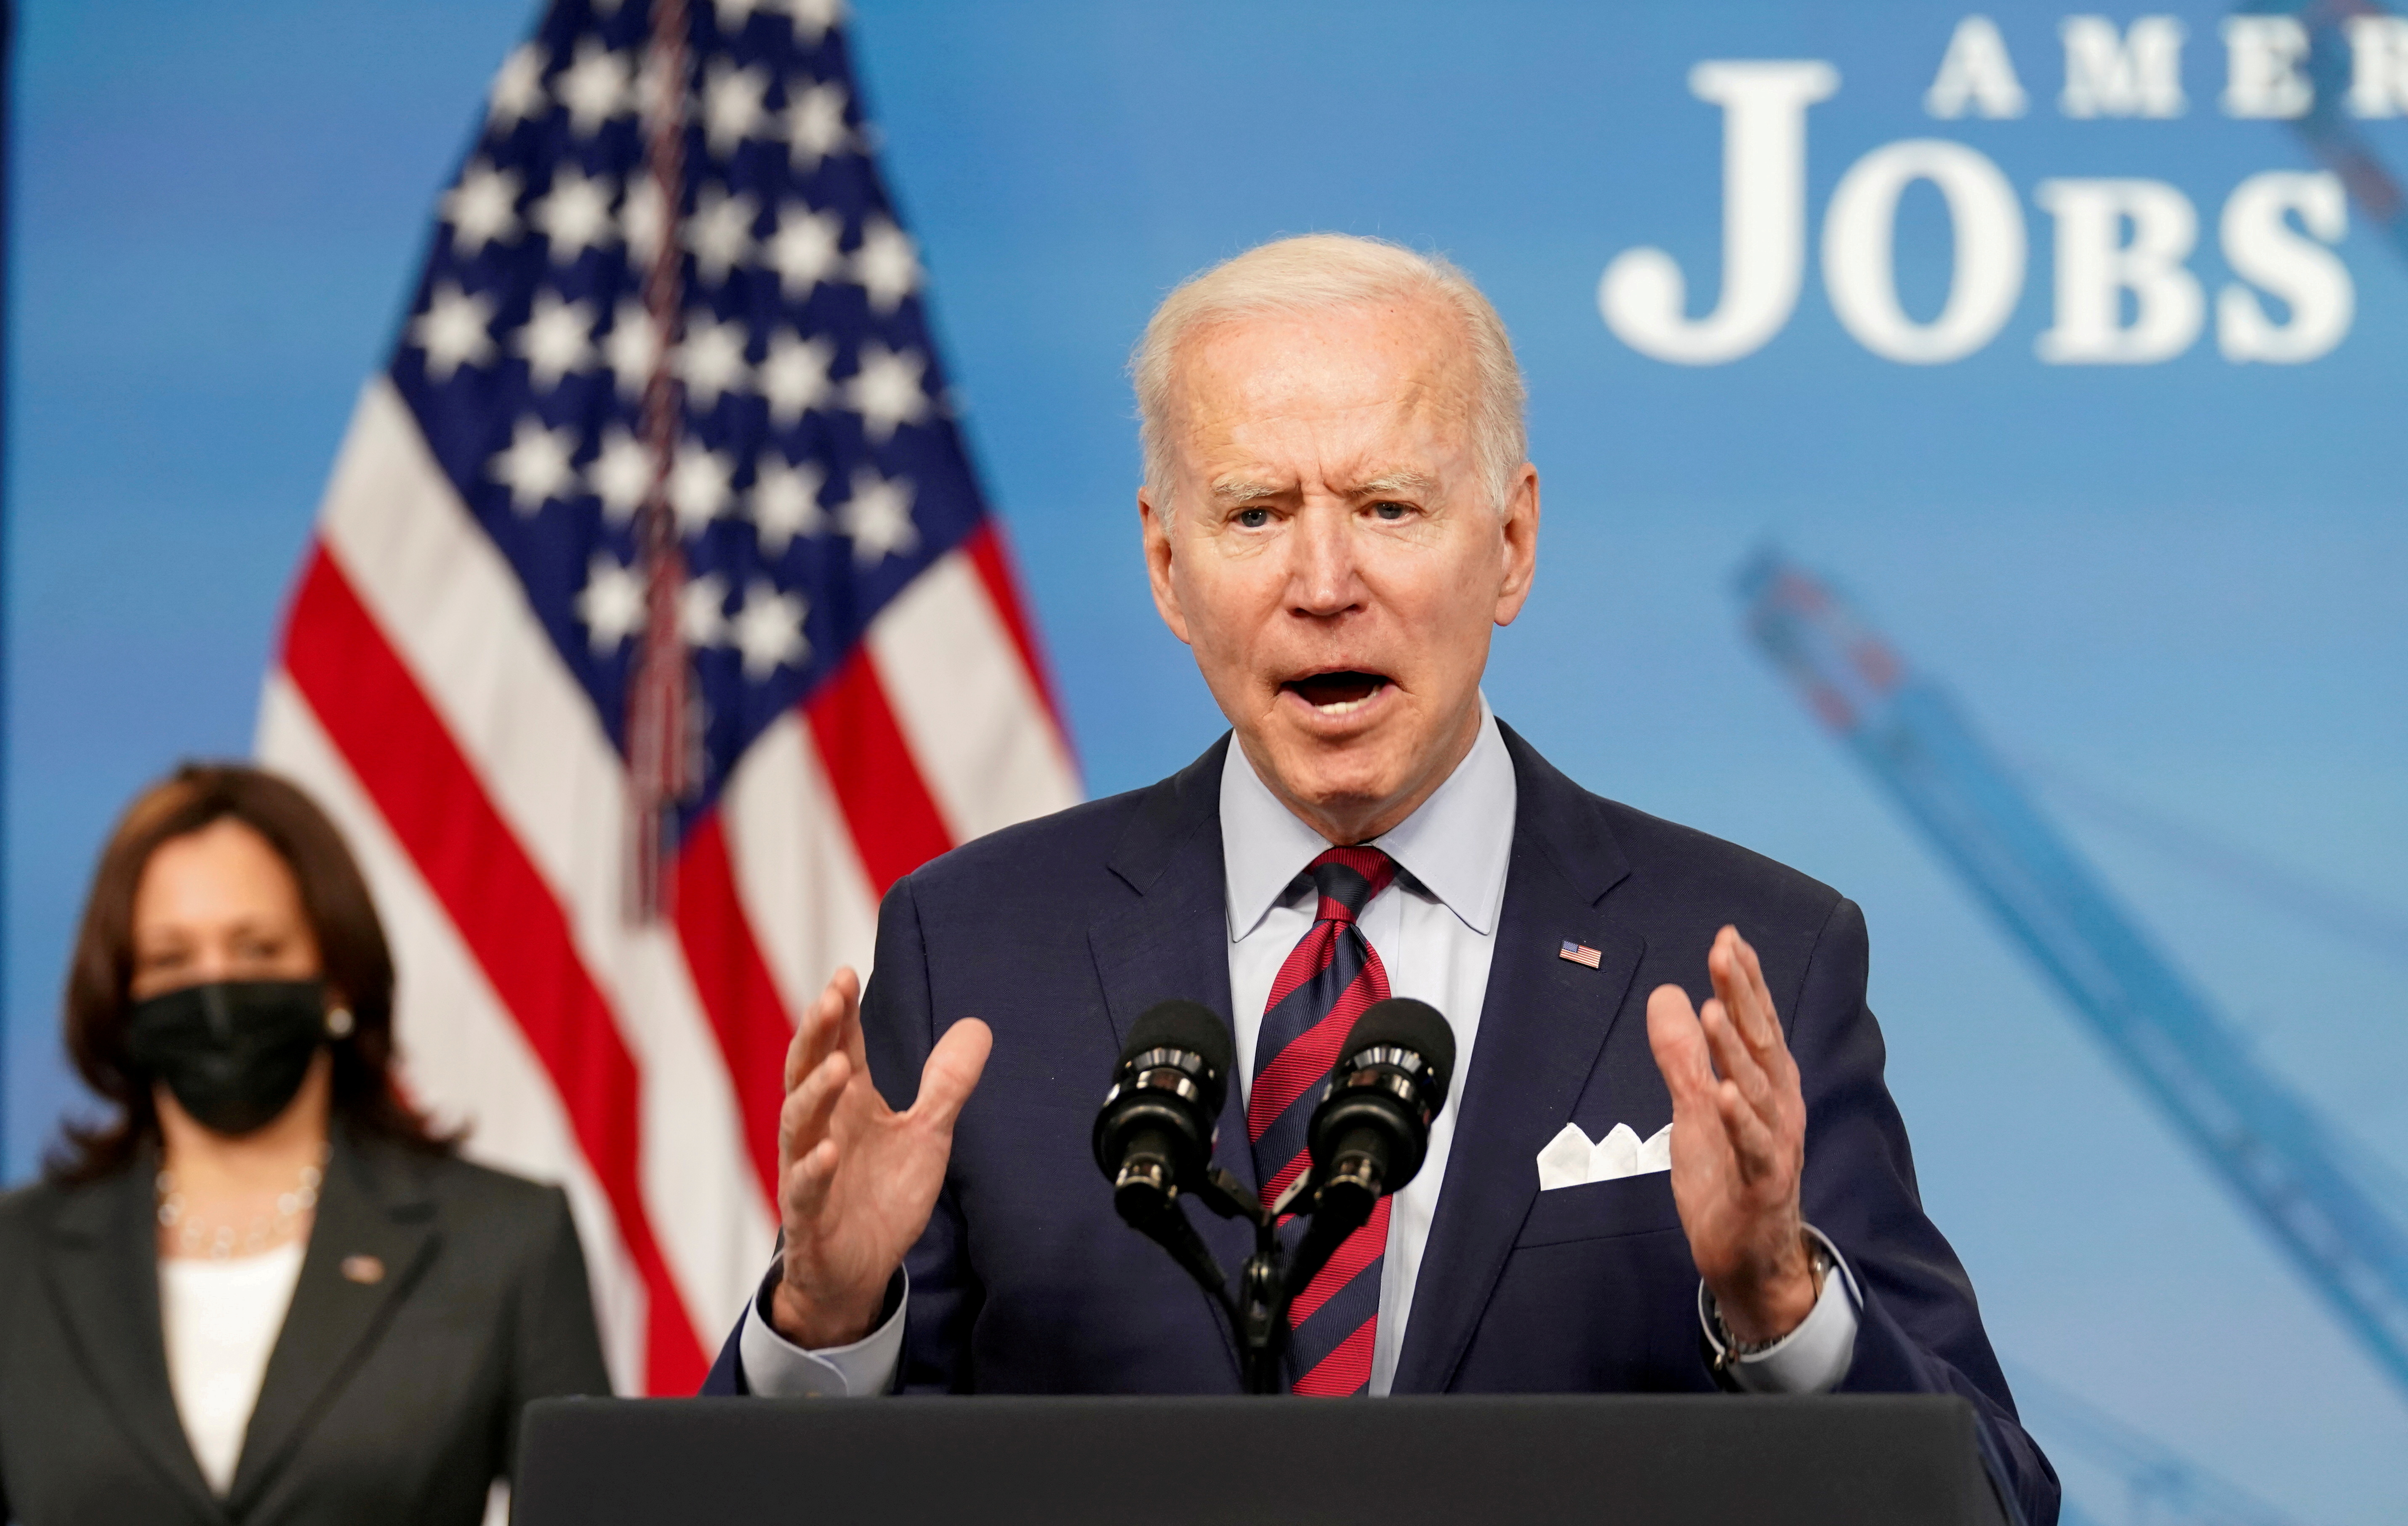 U.S. President Joe Biden speaks about jobs and the economy at the White House in Washington, U.S., April 7, 2021. REUTERS/Kevin Lamarque/File Photo